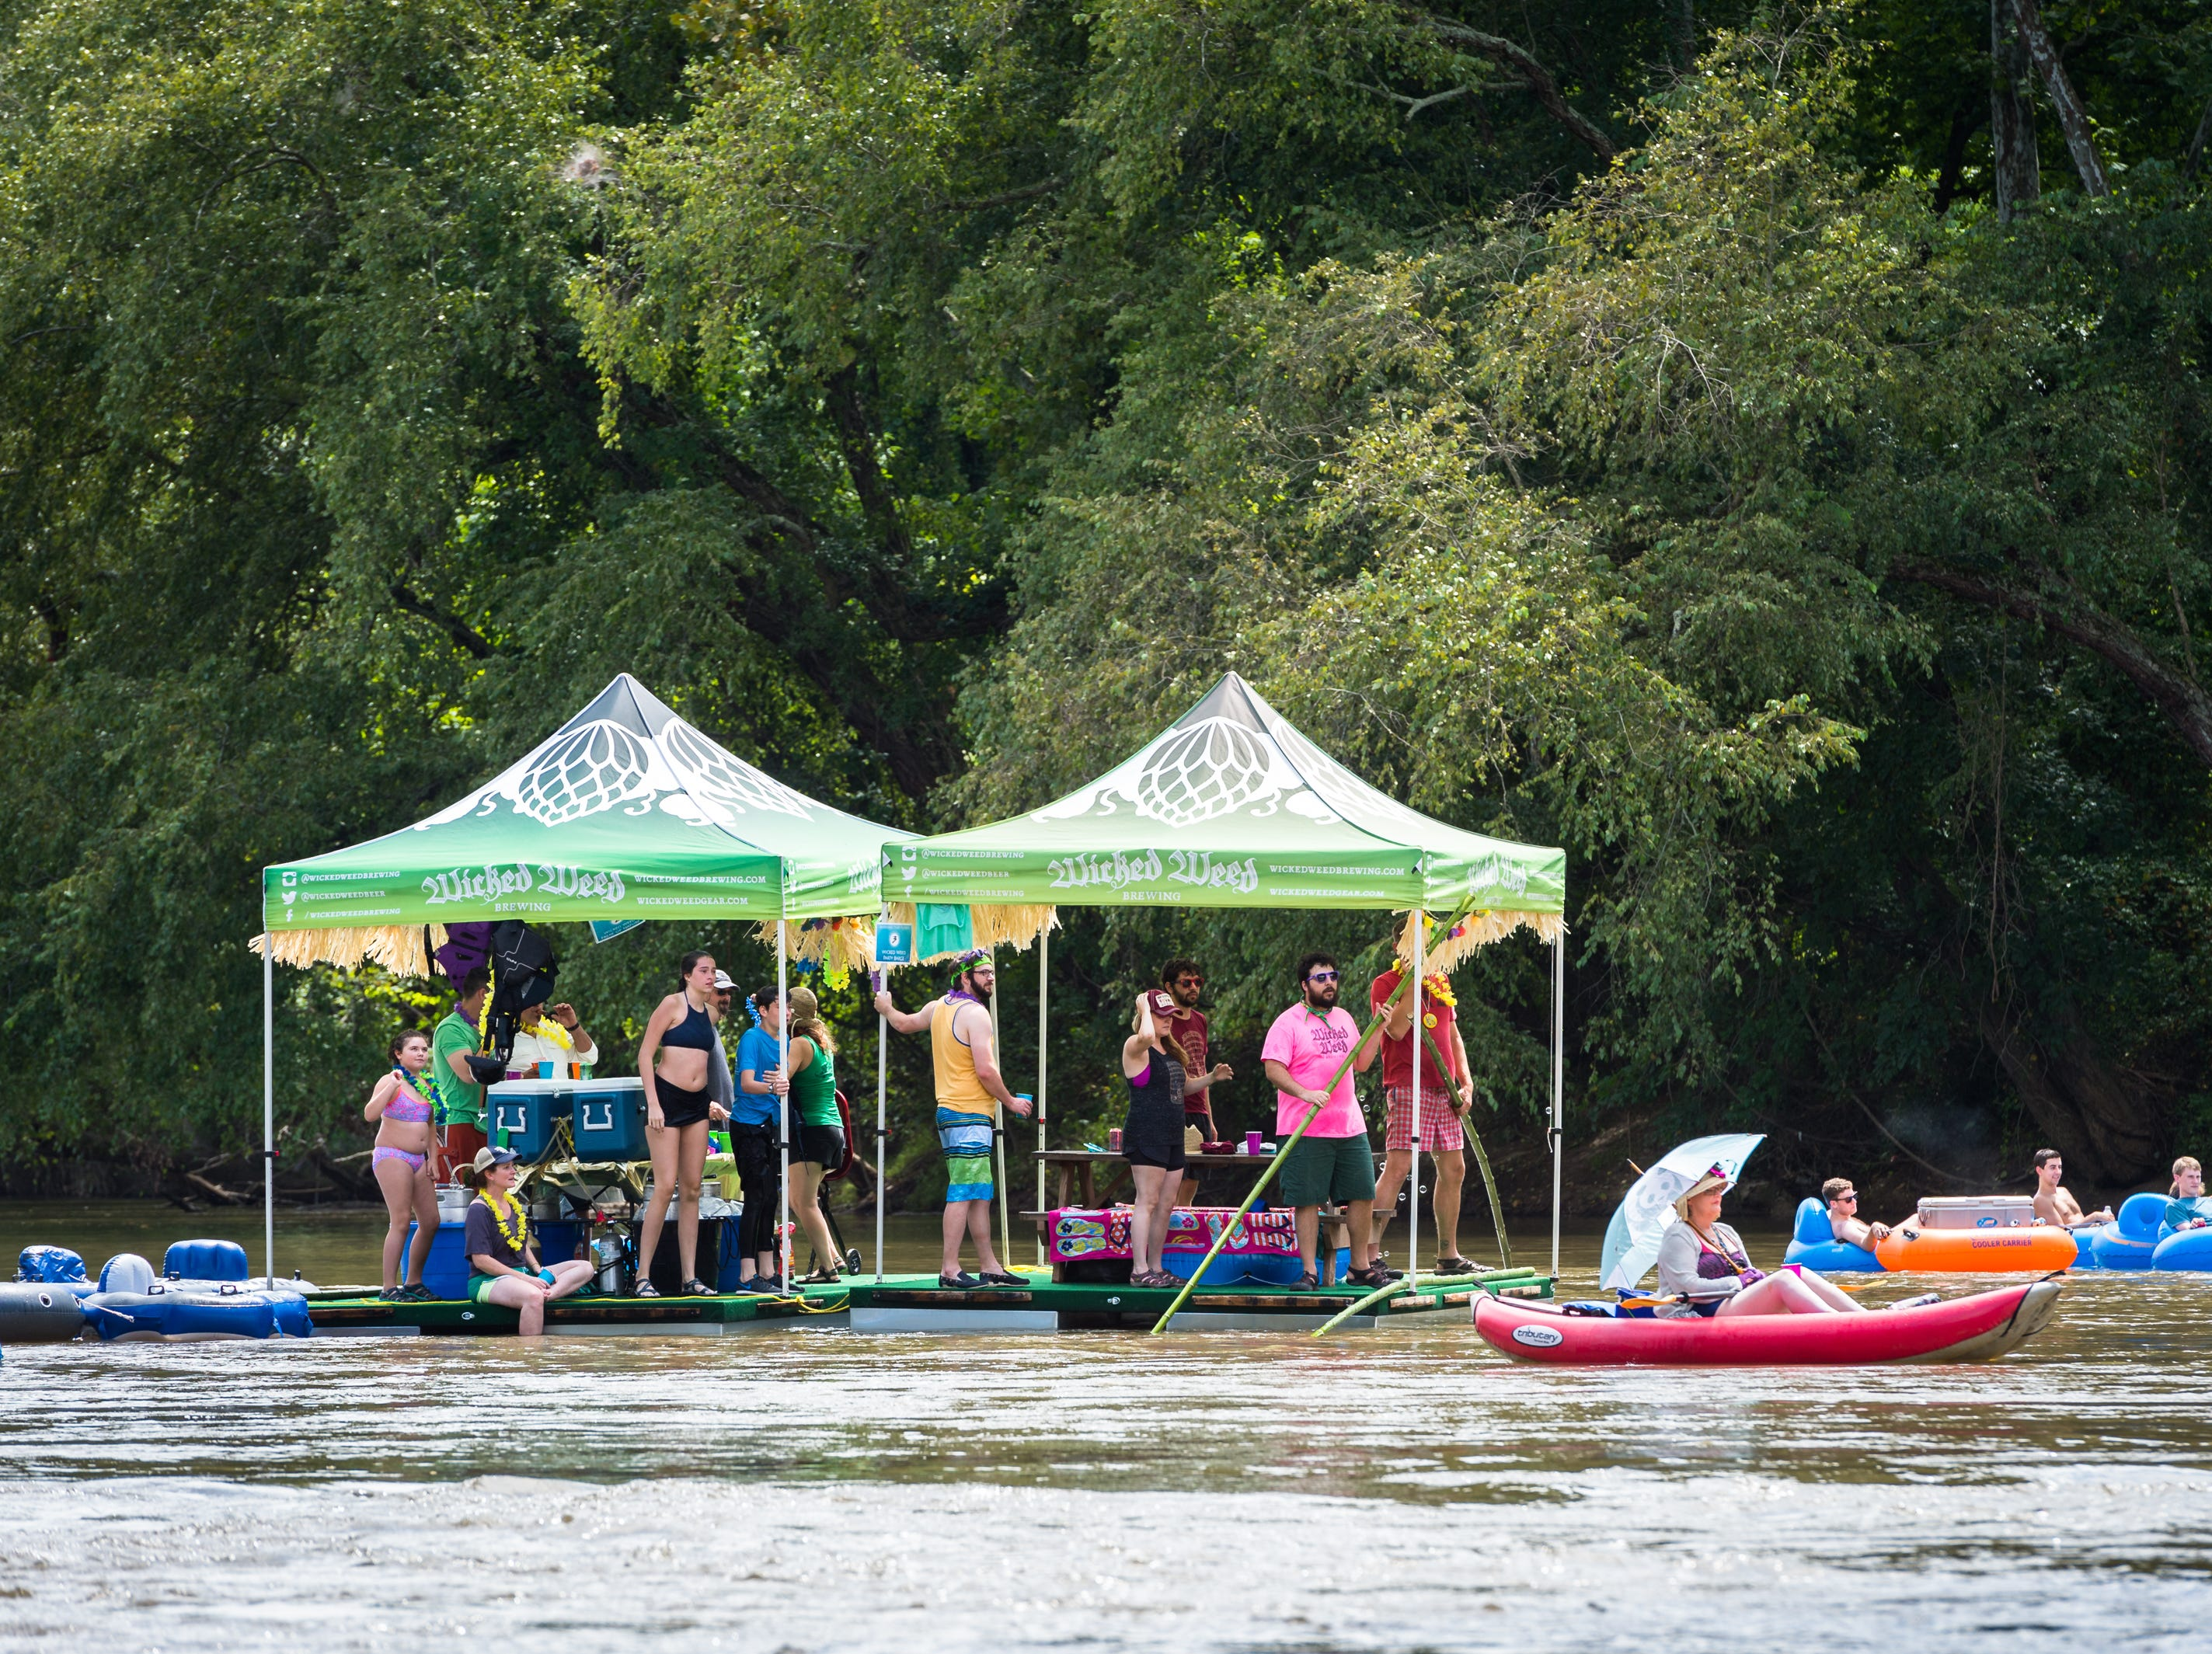 The Wicked Weed Brewing Anything that Floats parade team makes its way down the French Broad River to New Belgium Brewing where RiverLink's RiverFest took place Saturday, August 18, 2018.